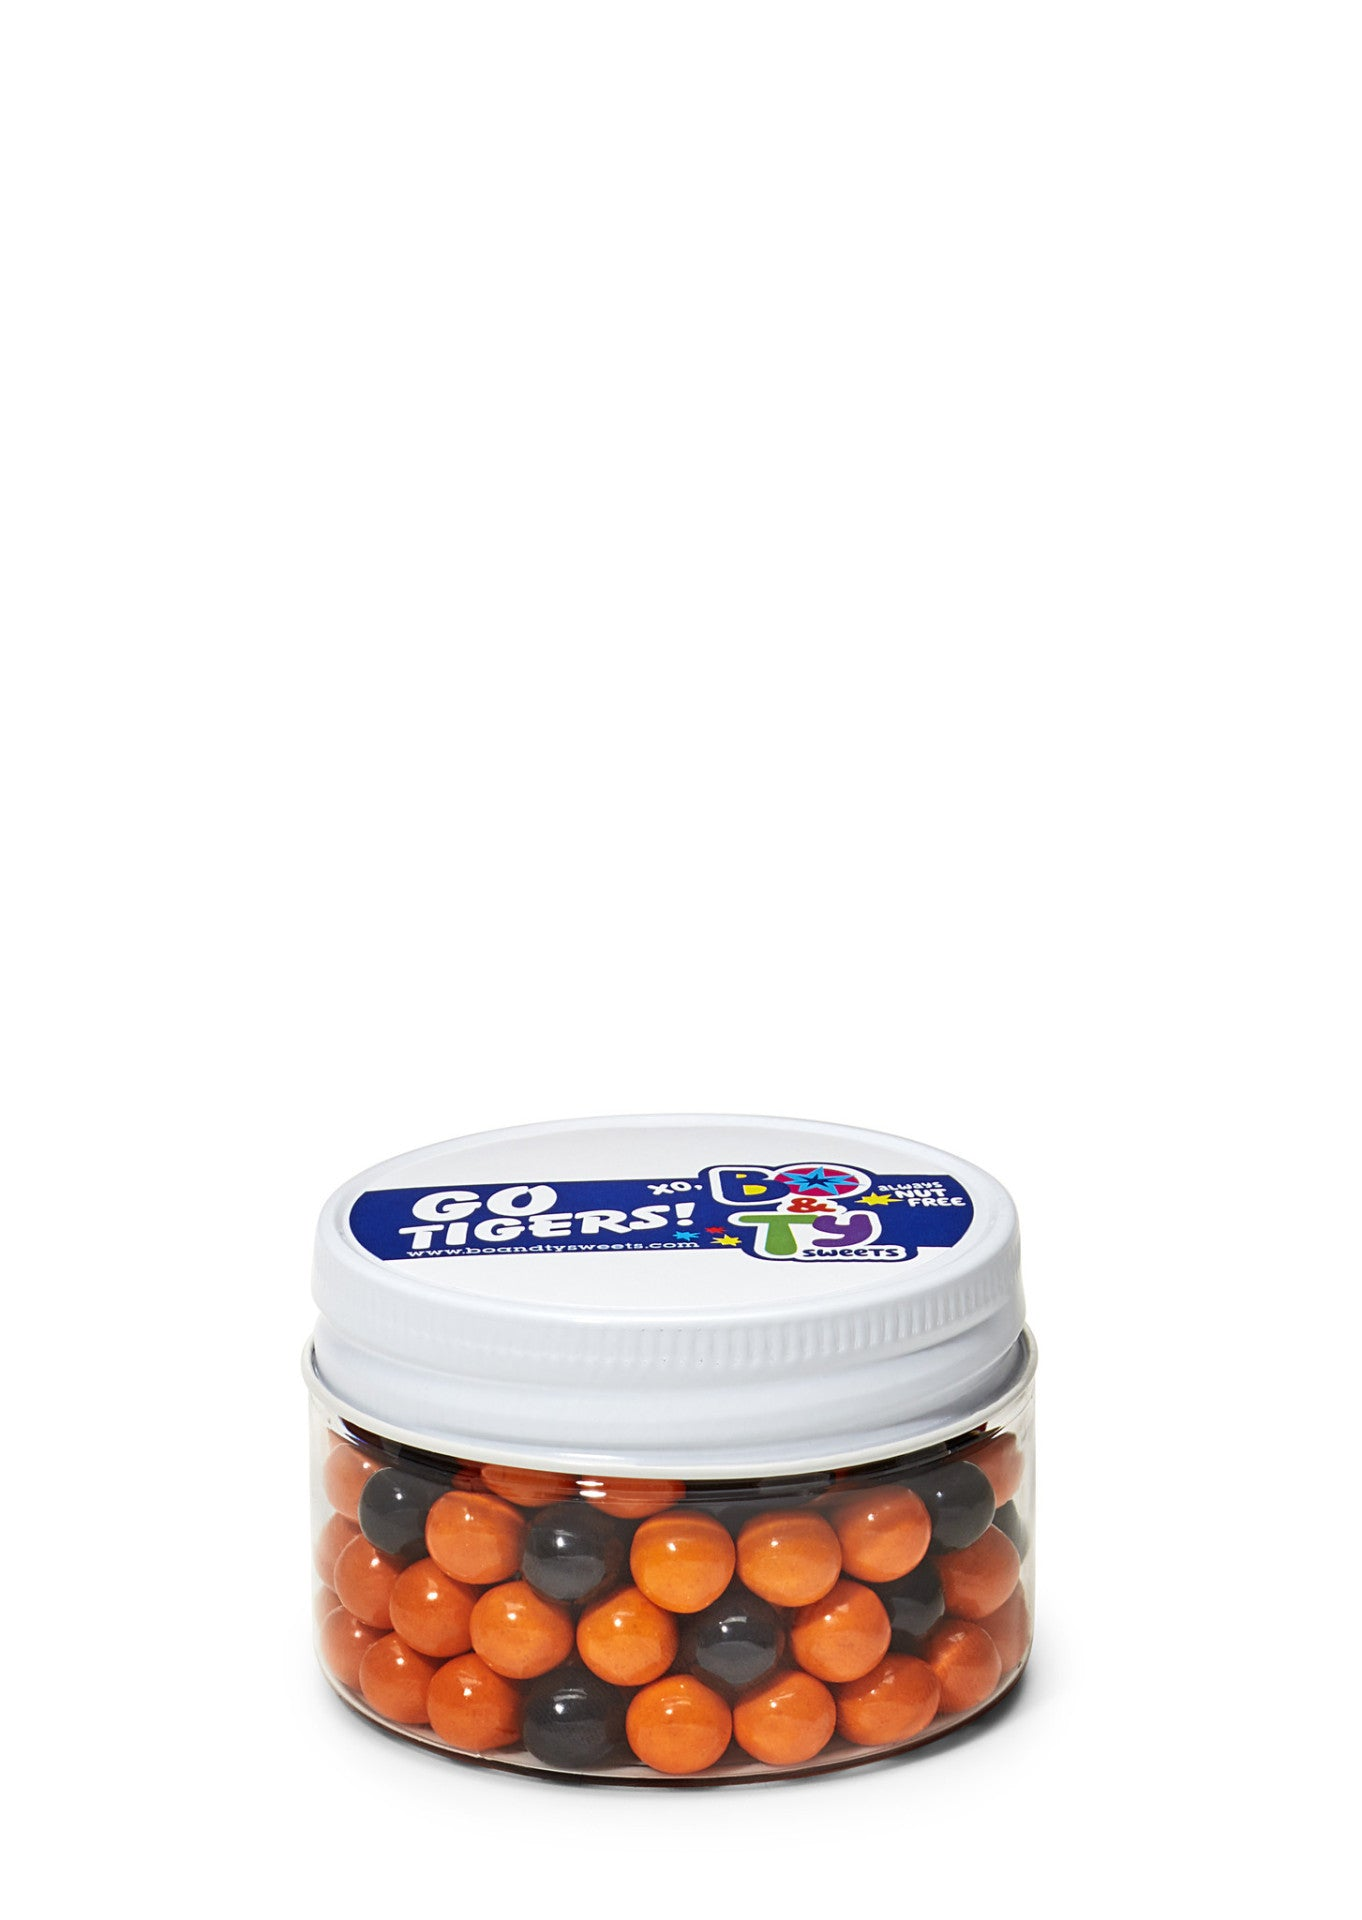 Show your school spirit with our allergy friendly jars filled with peanut free, tree nut free and gluten free chocolate candy in your school's team colors!  Go Tigers!